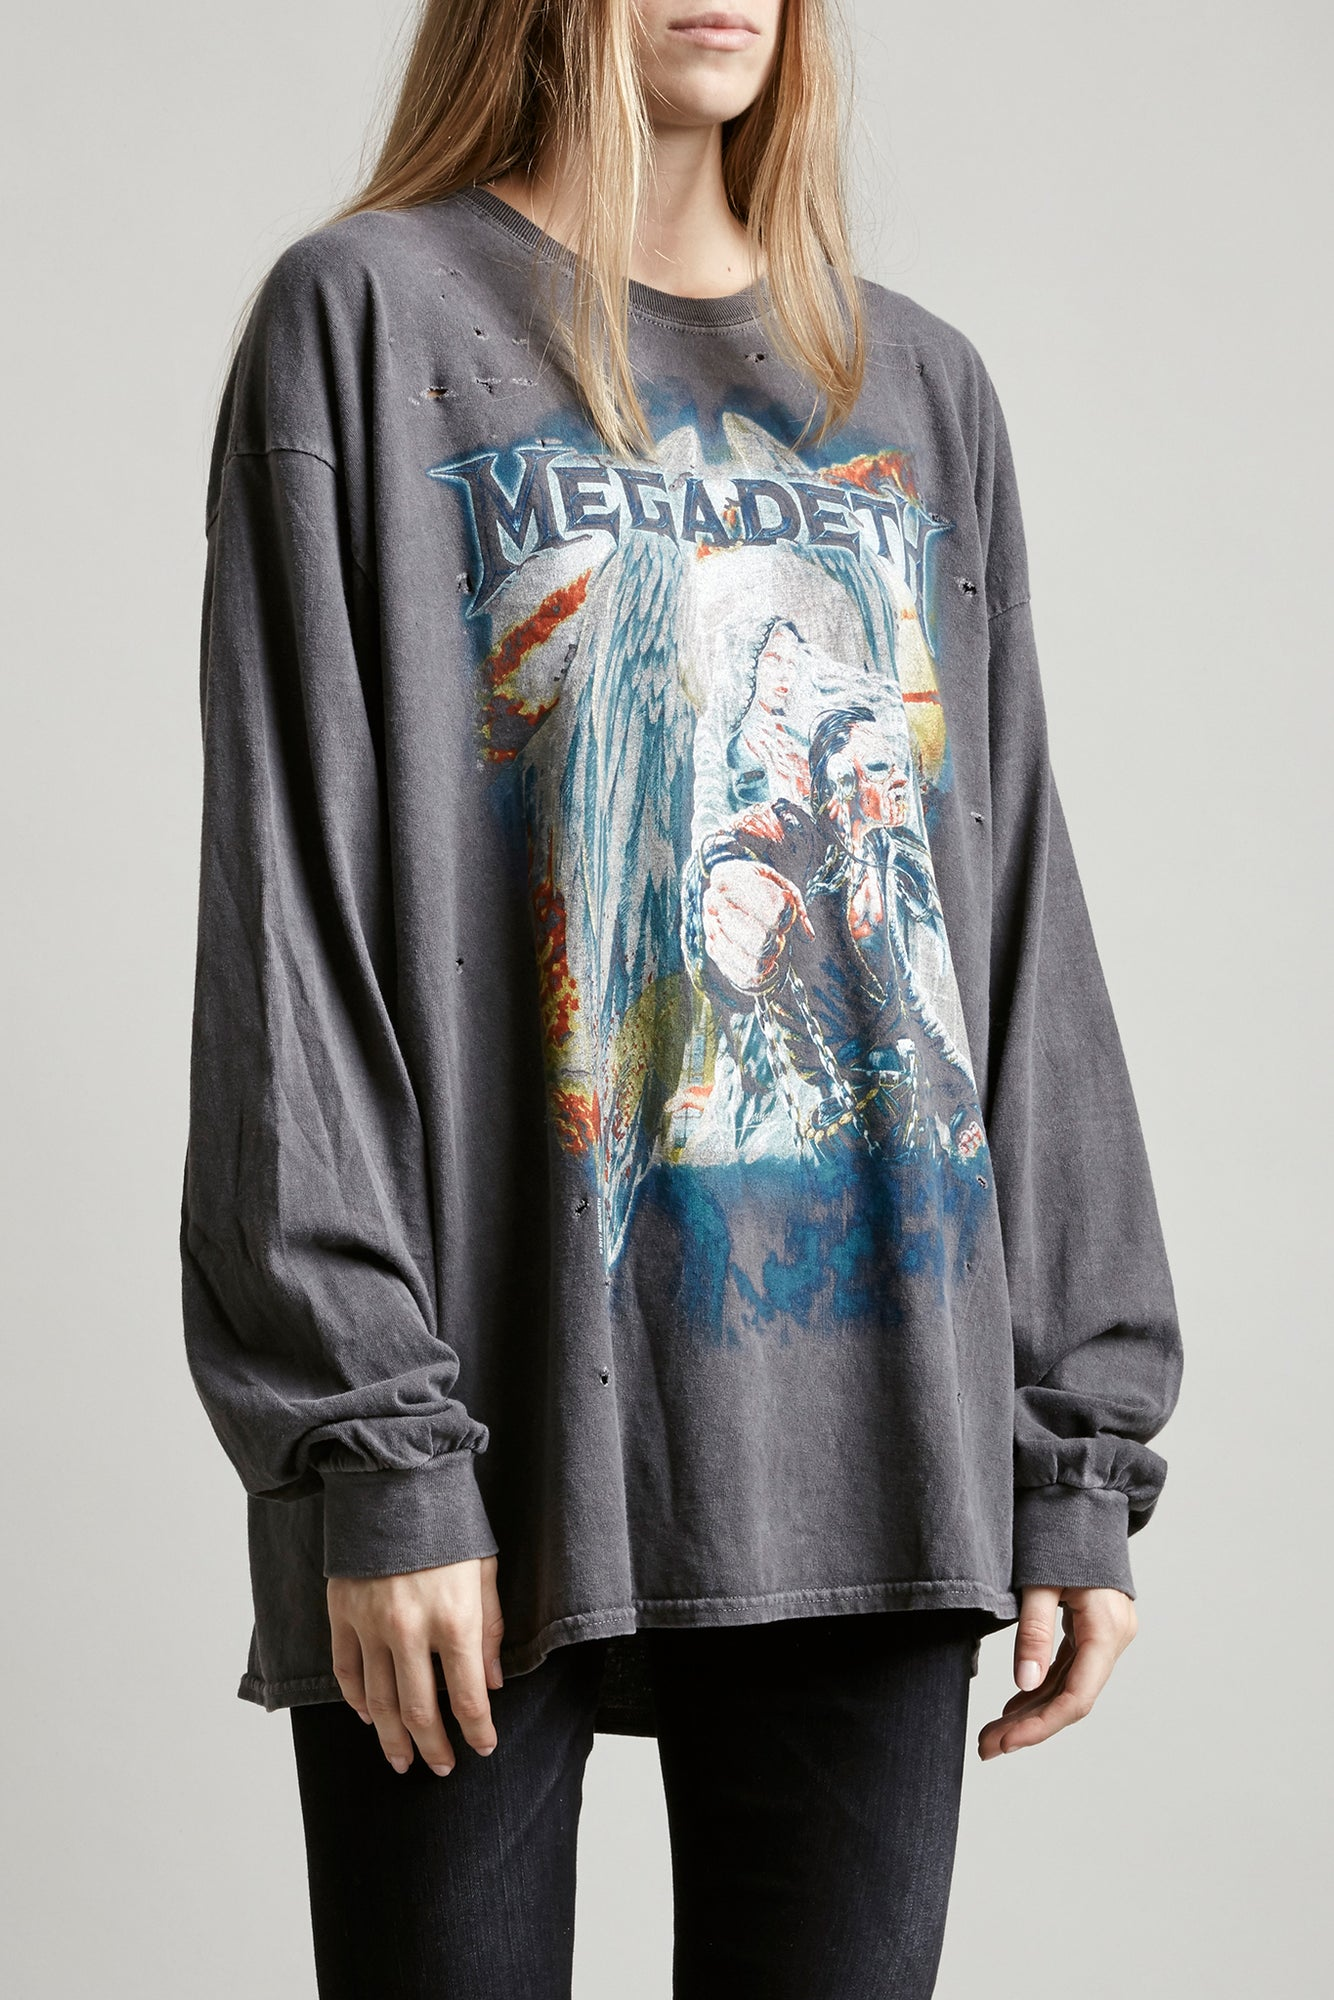 R13 Denim classic cotton Megadeth band tee, exaggerated long sleeves in faded black